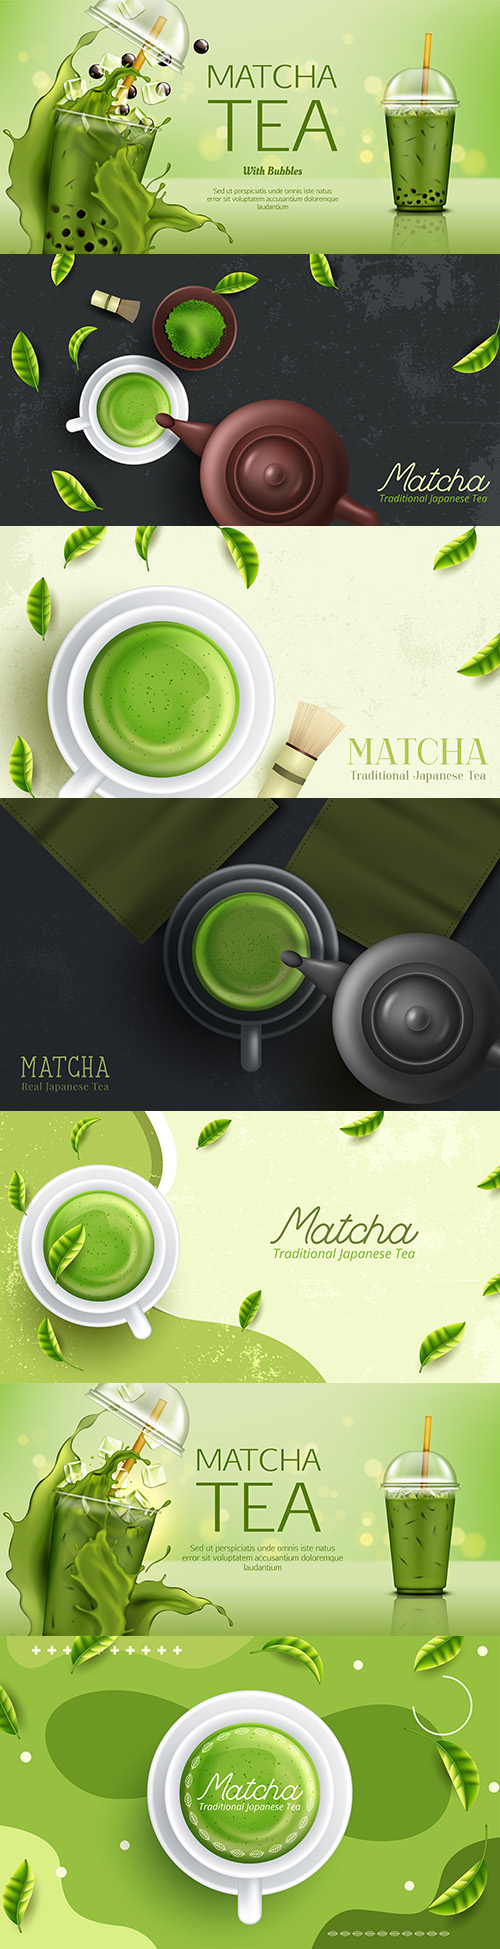 Green matte drink and tea accessories Japanese ceremony